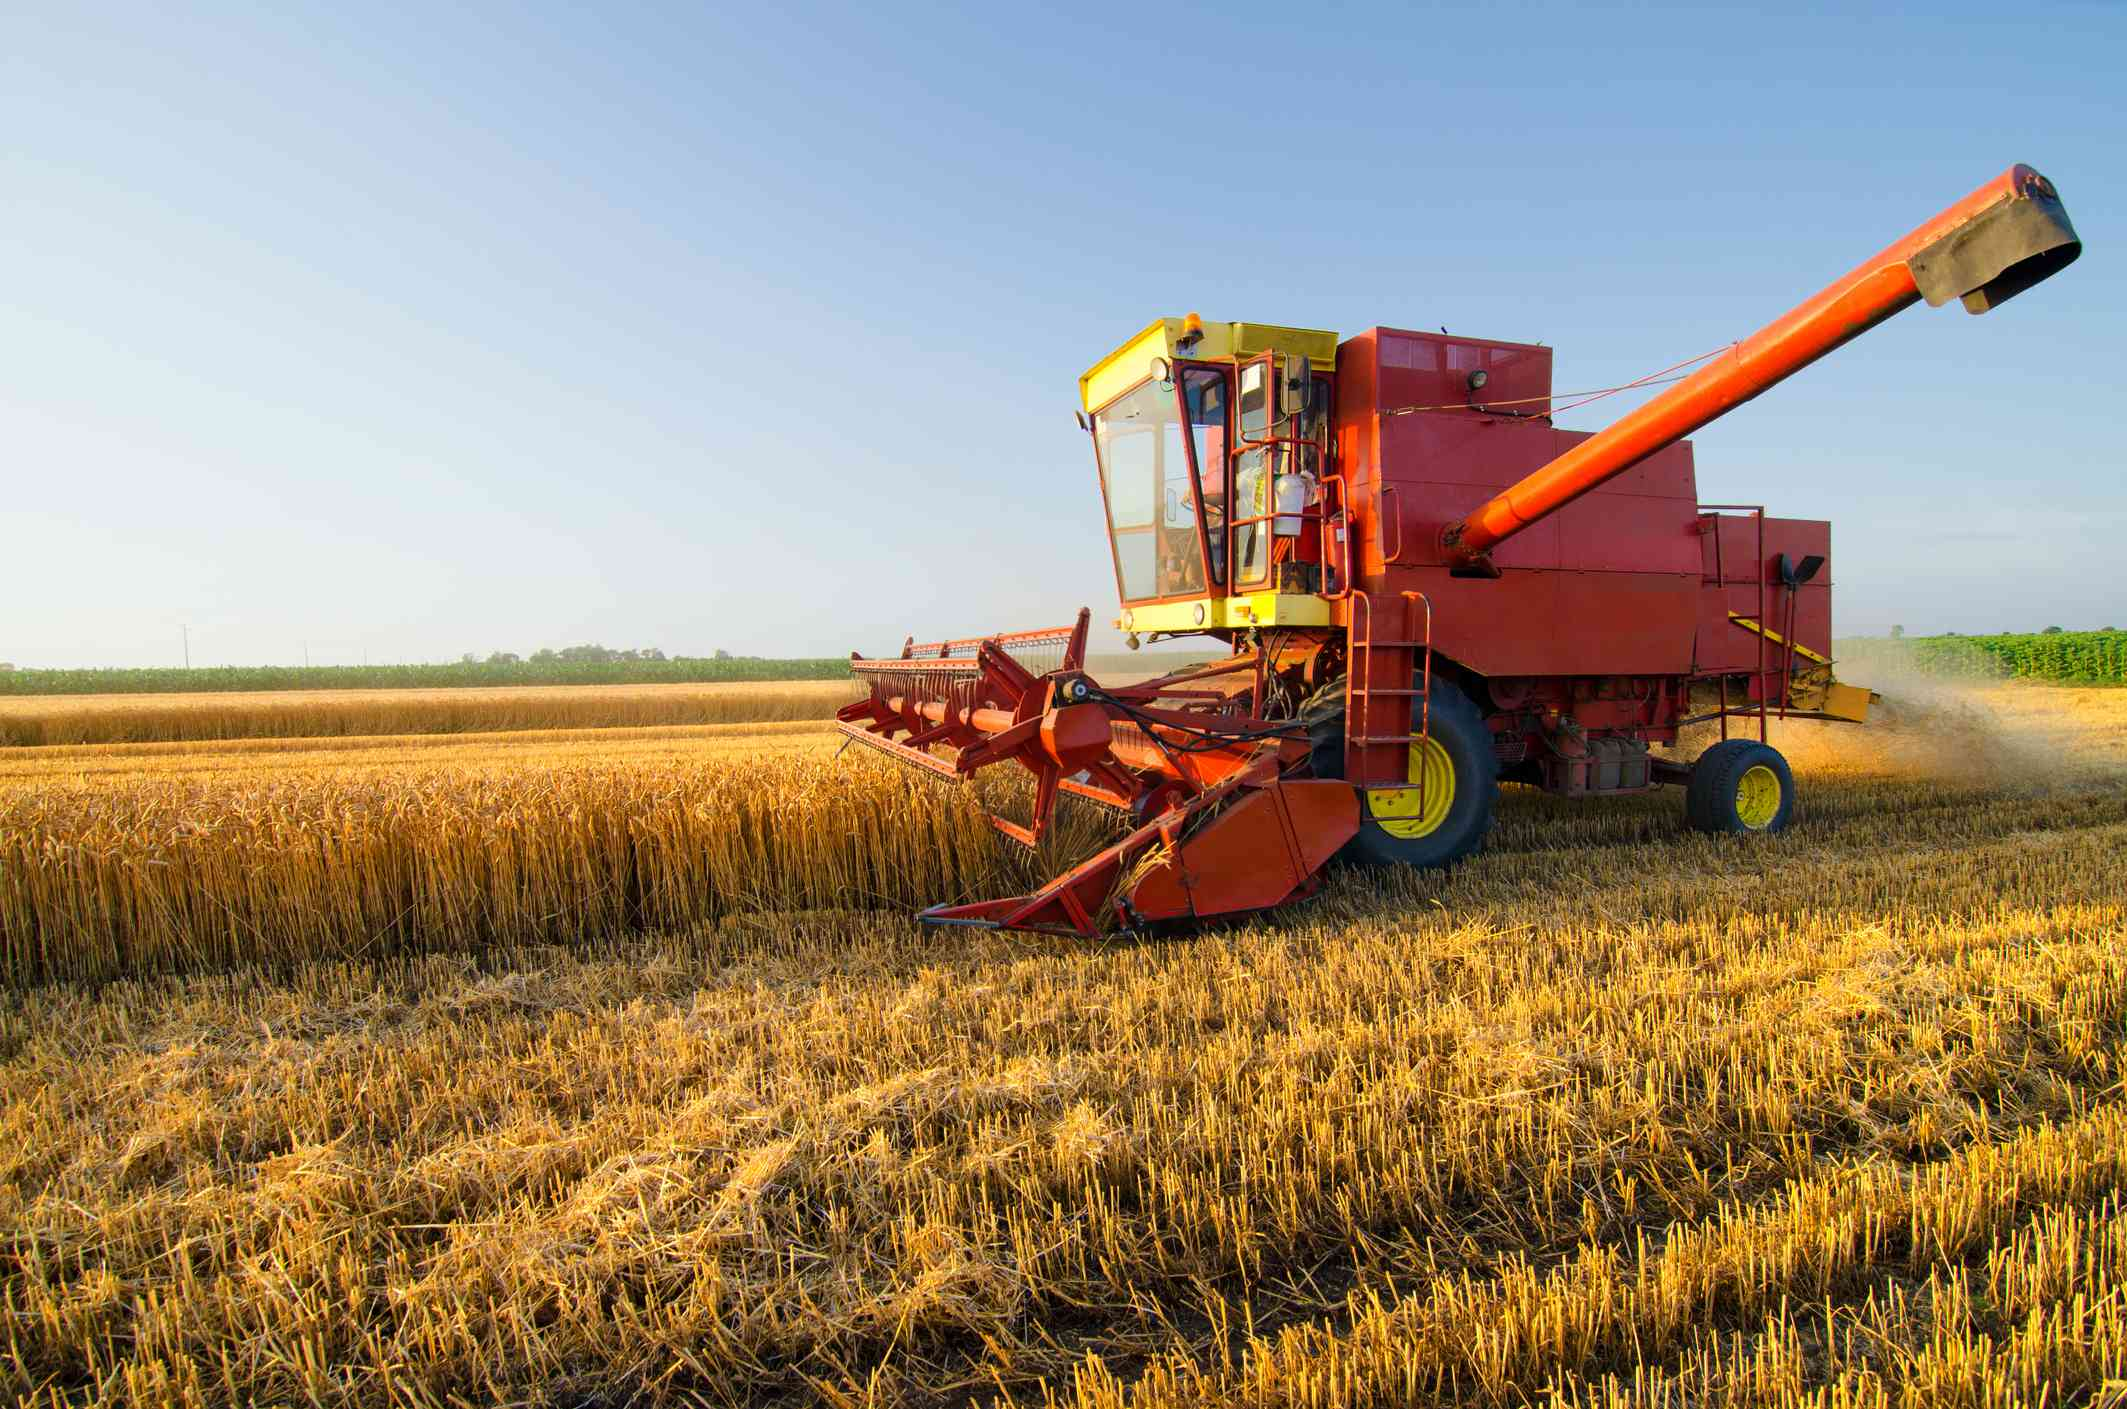 Harvester combine harvesting wheat on agricultural field